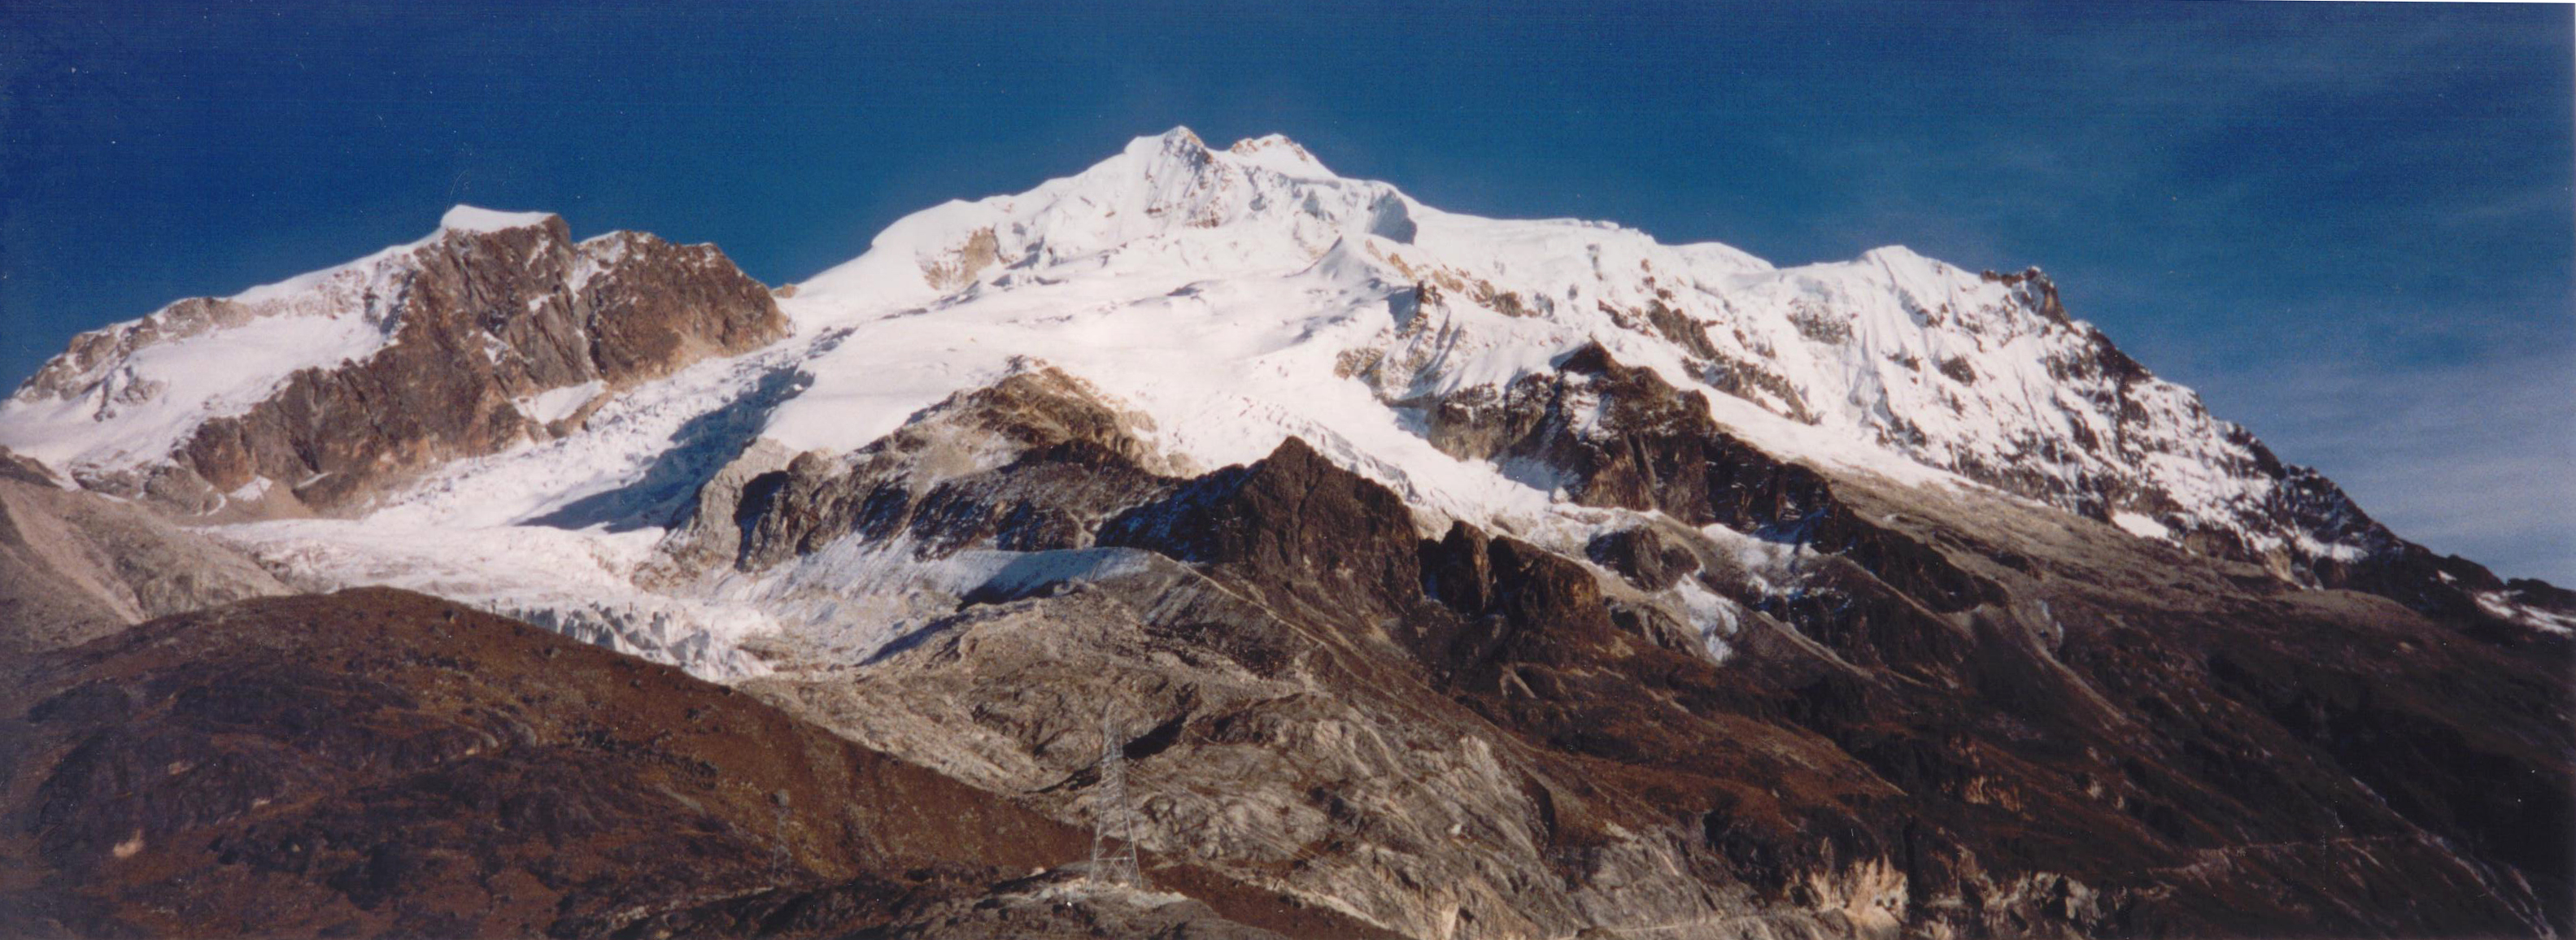 A view of Huayna Potosi from Basecamp.